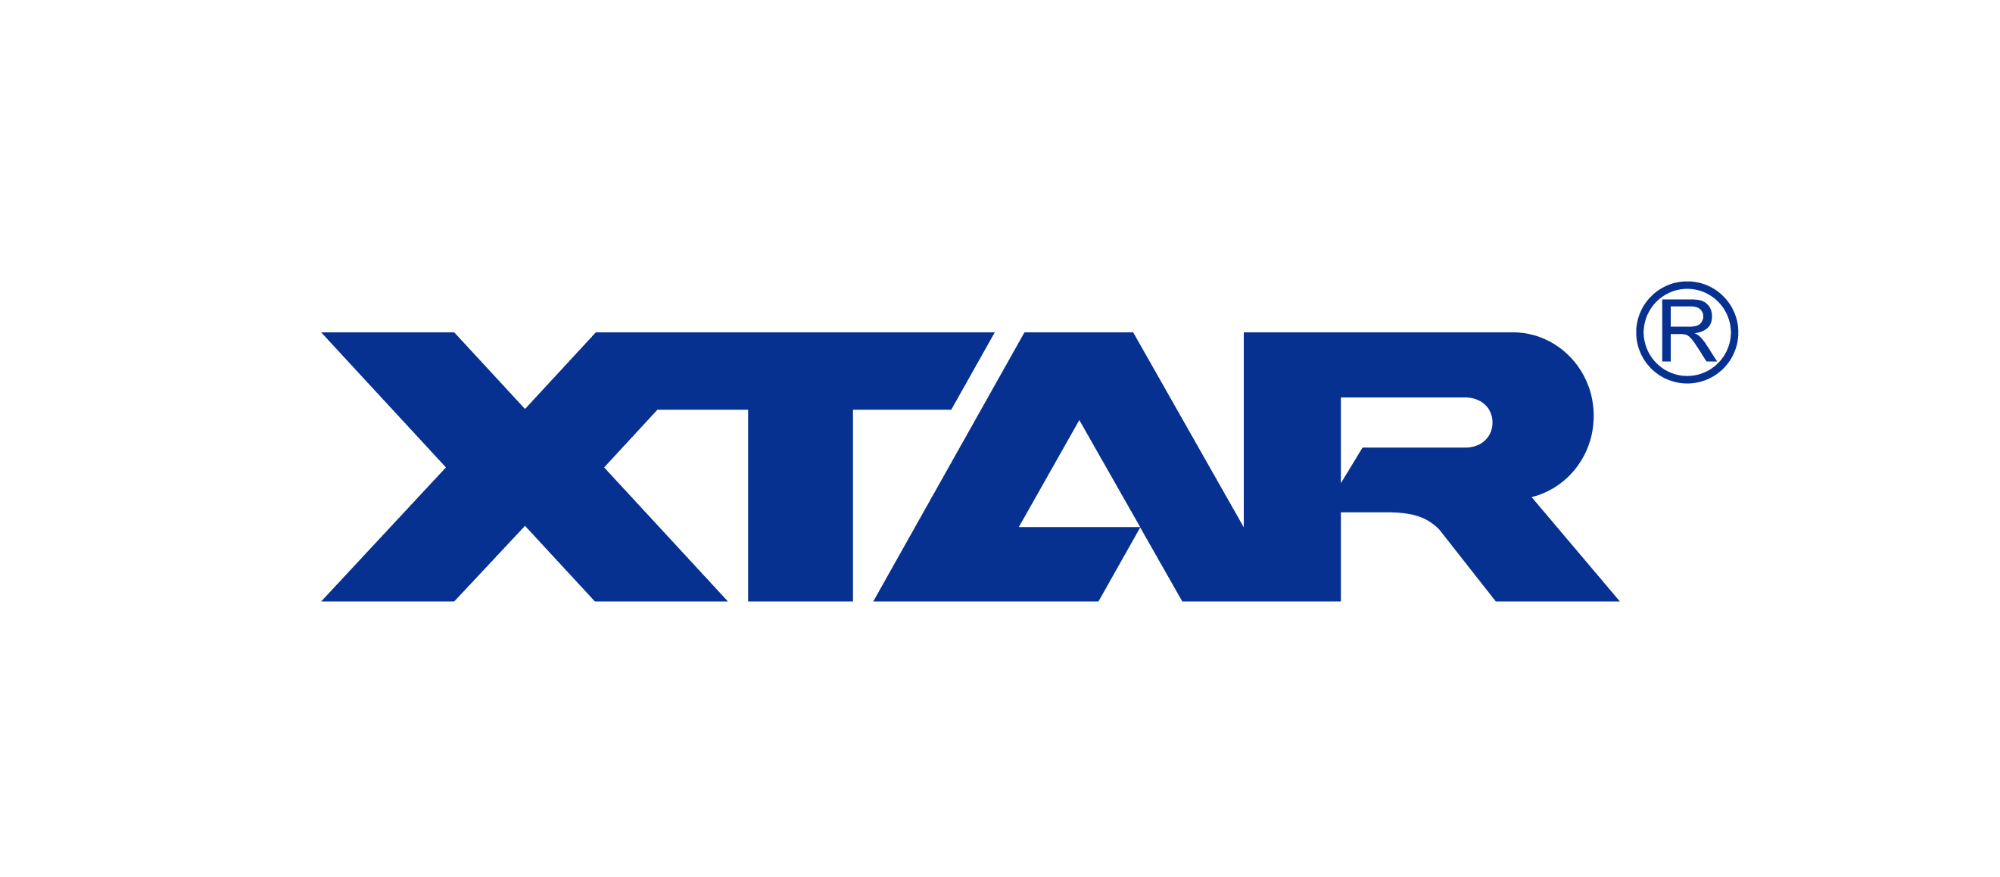 XTARDIRECT-The official store of XTAR charger, led flashlight and battery